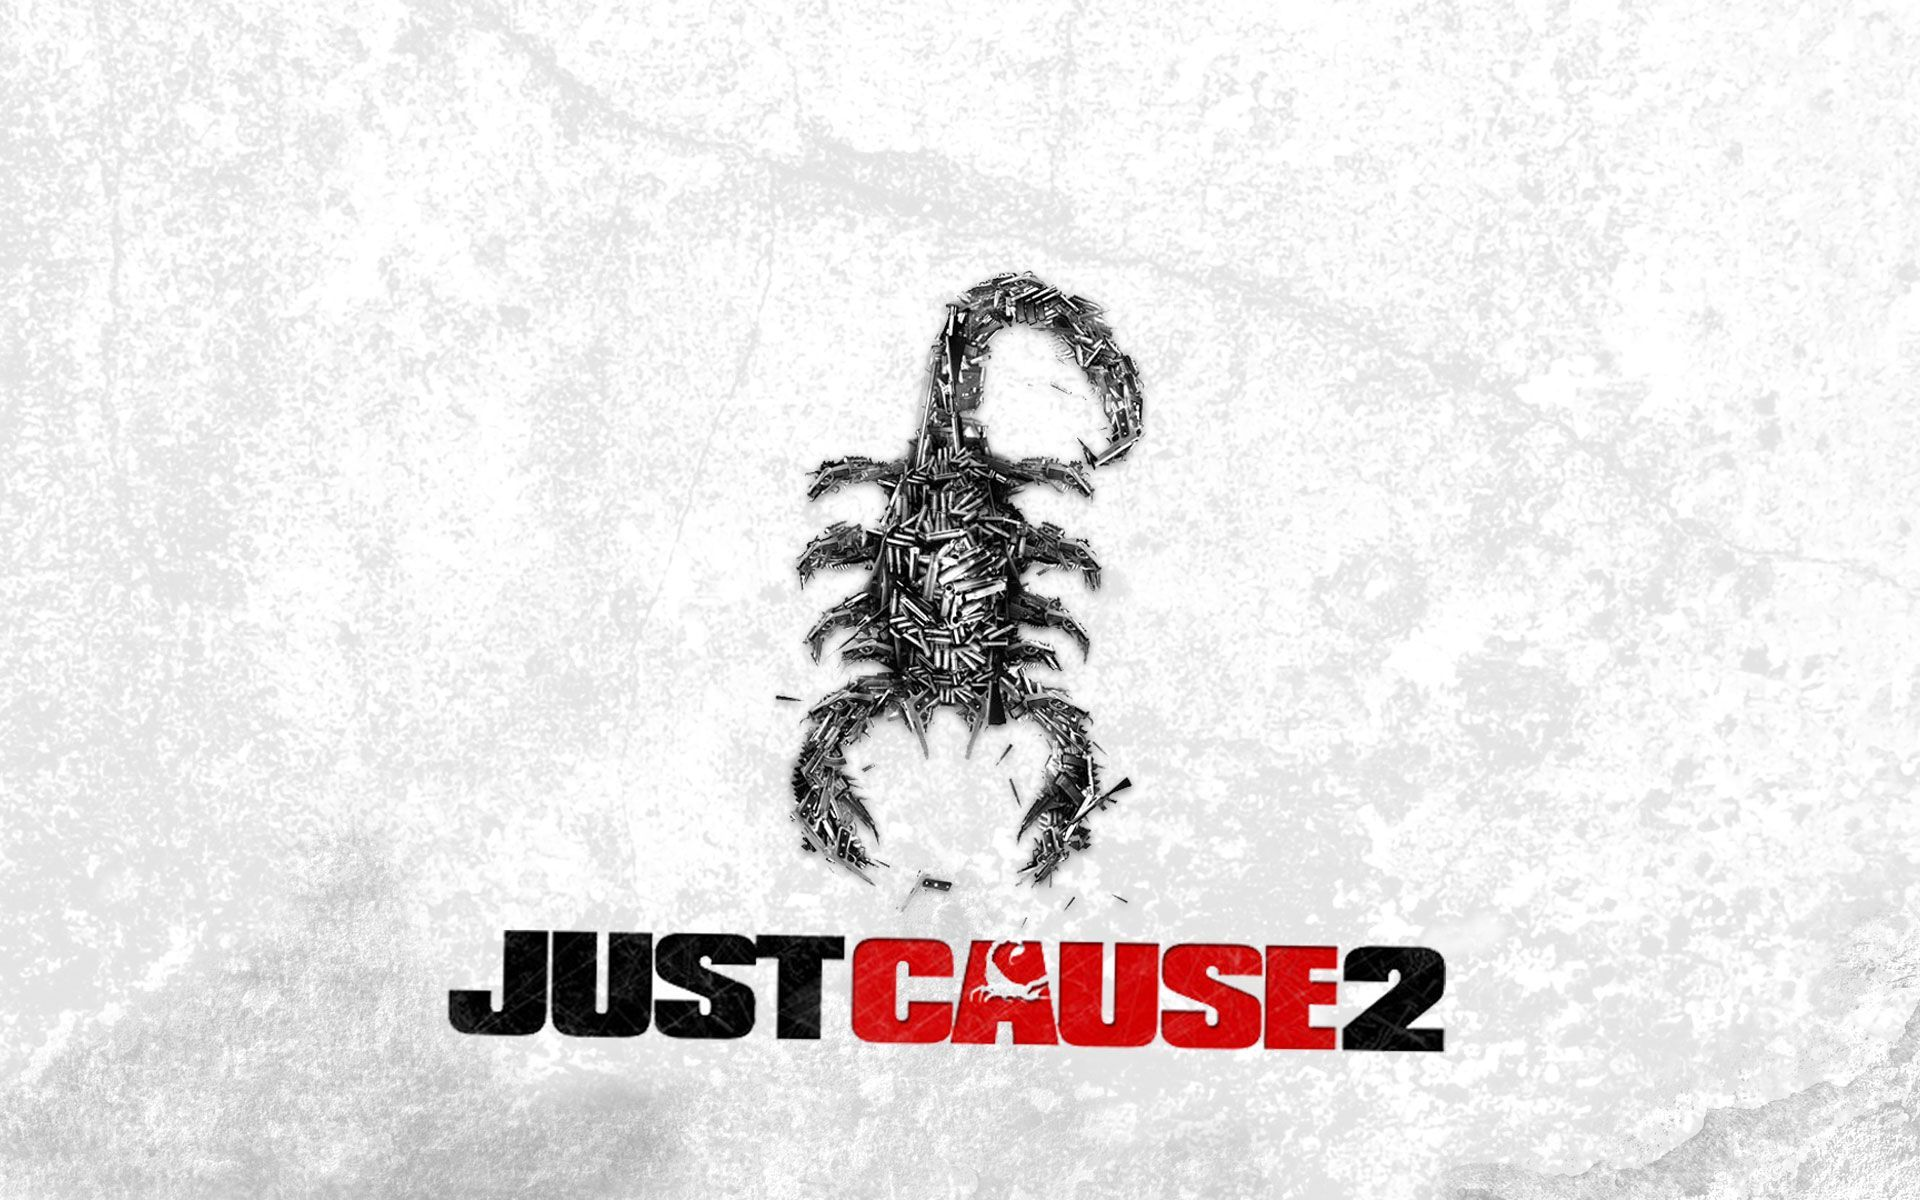 Just Cause 2 Wallpapers - Wallpaper Cave